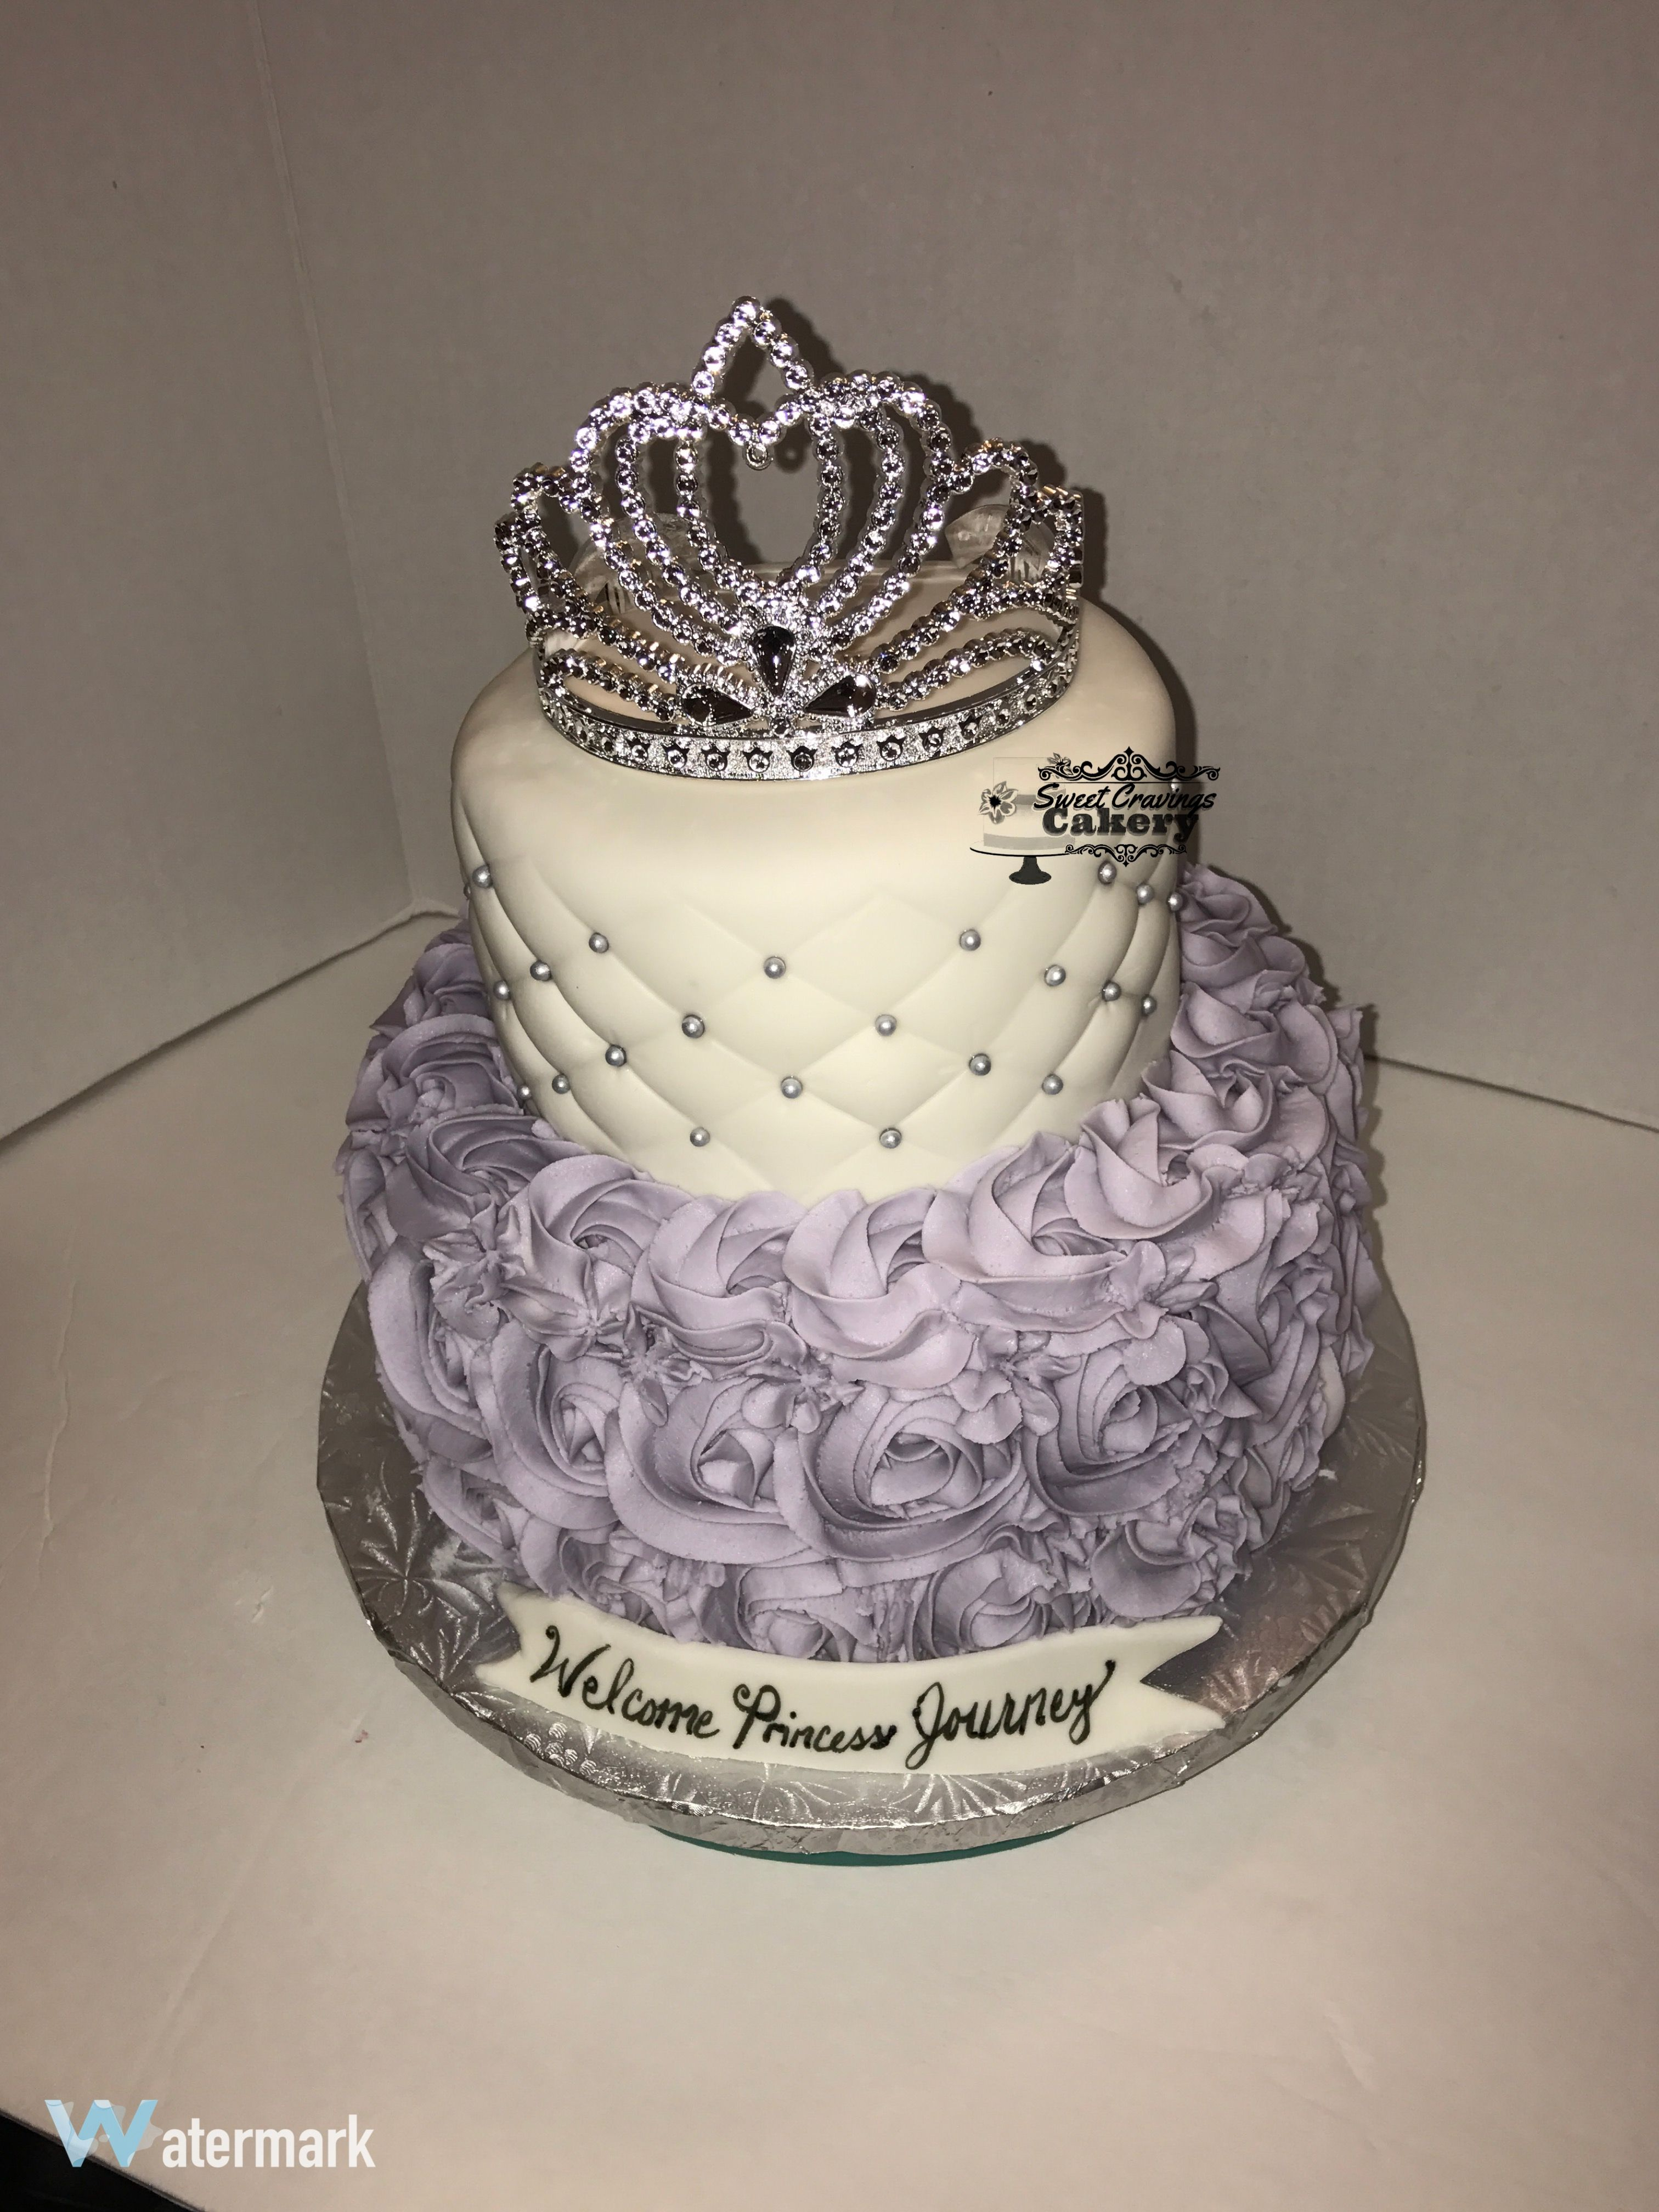 White And Lavender Rosette Cake With Princess Tiara In